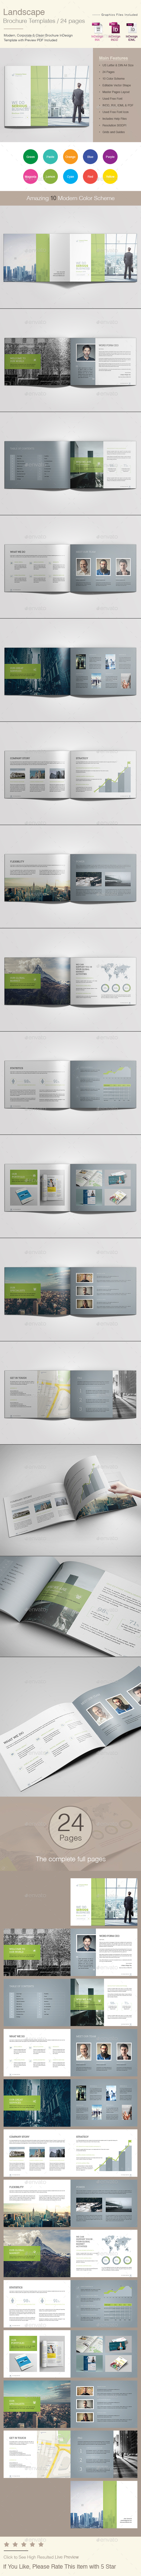 Landscape Brochure Templates - Corporate Brochures